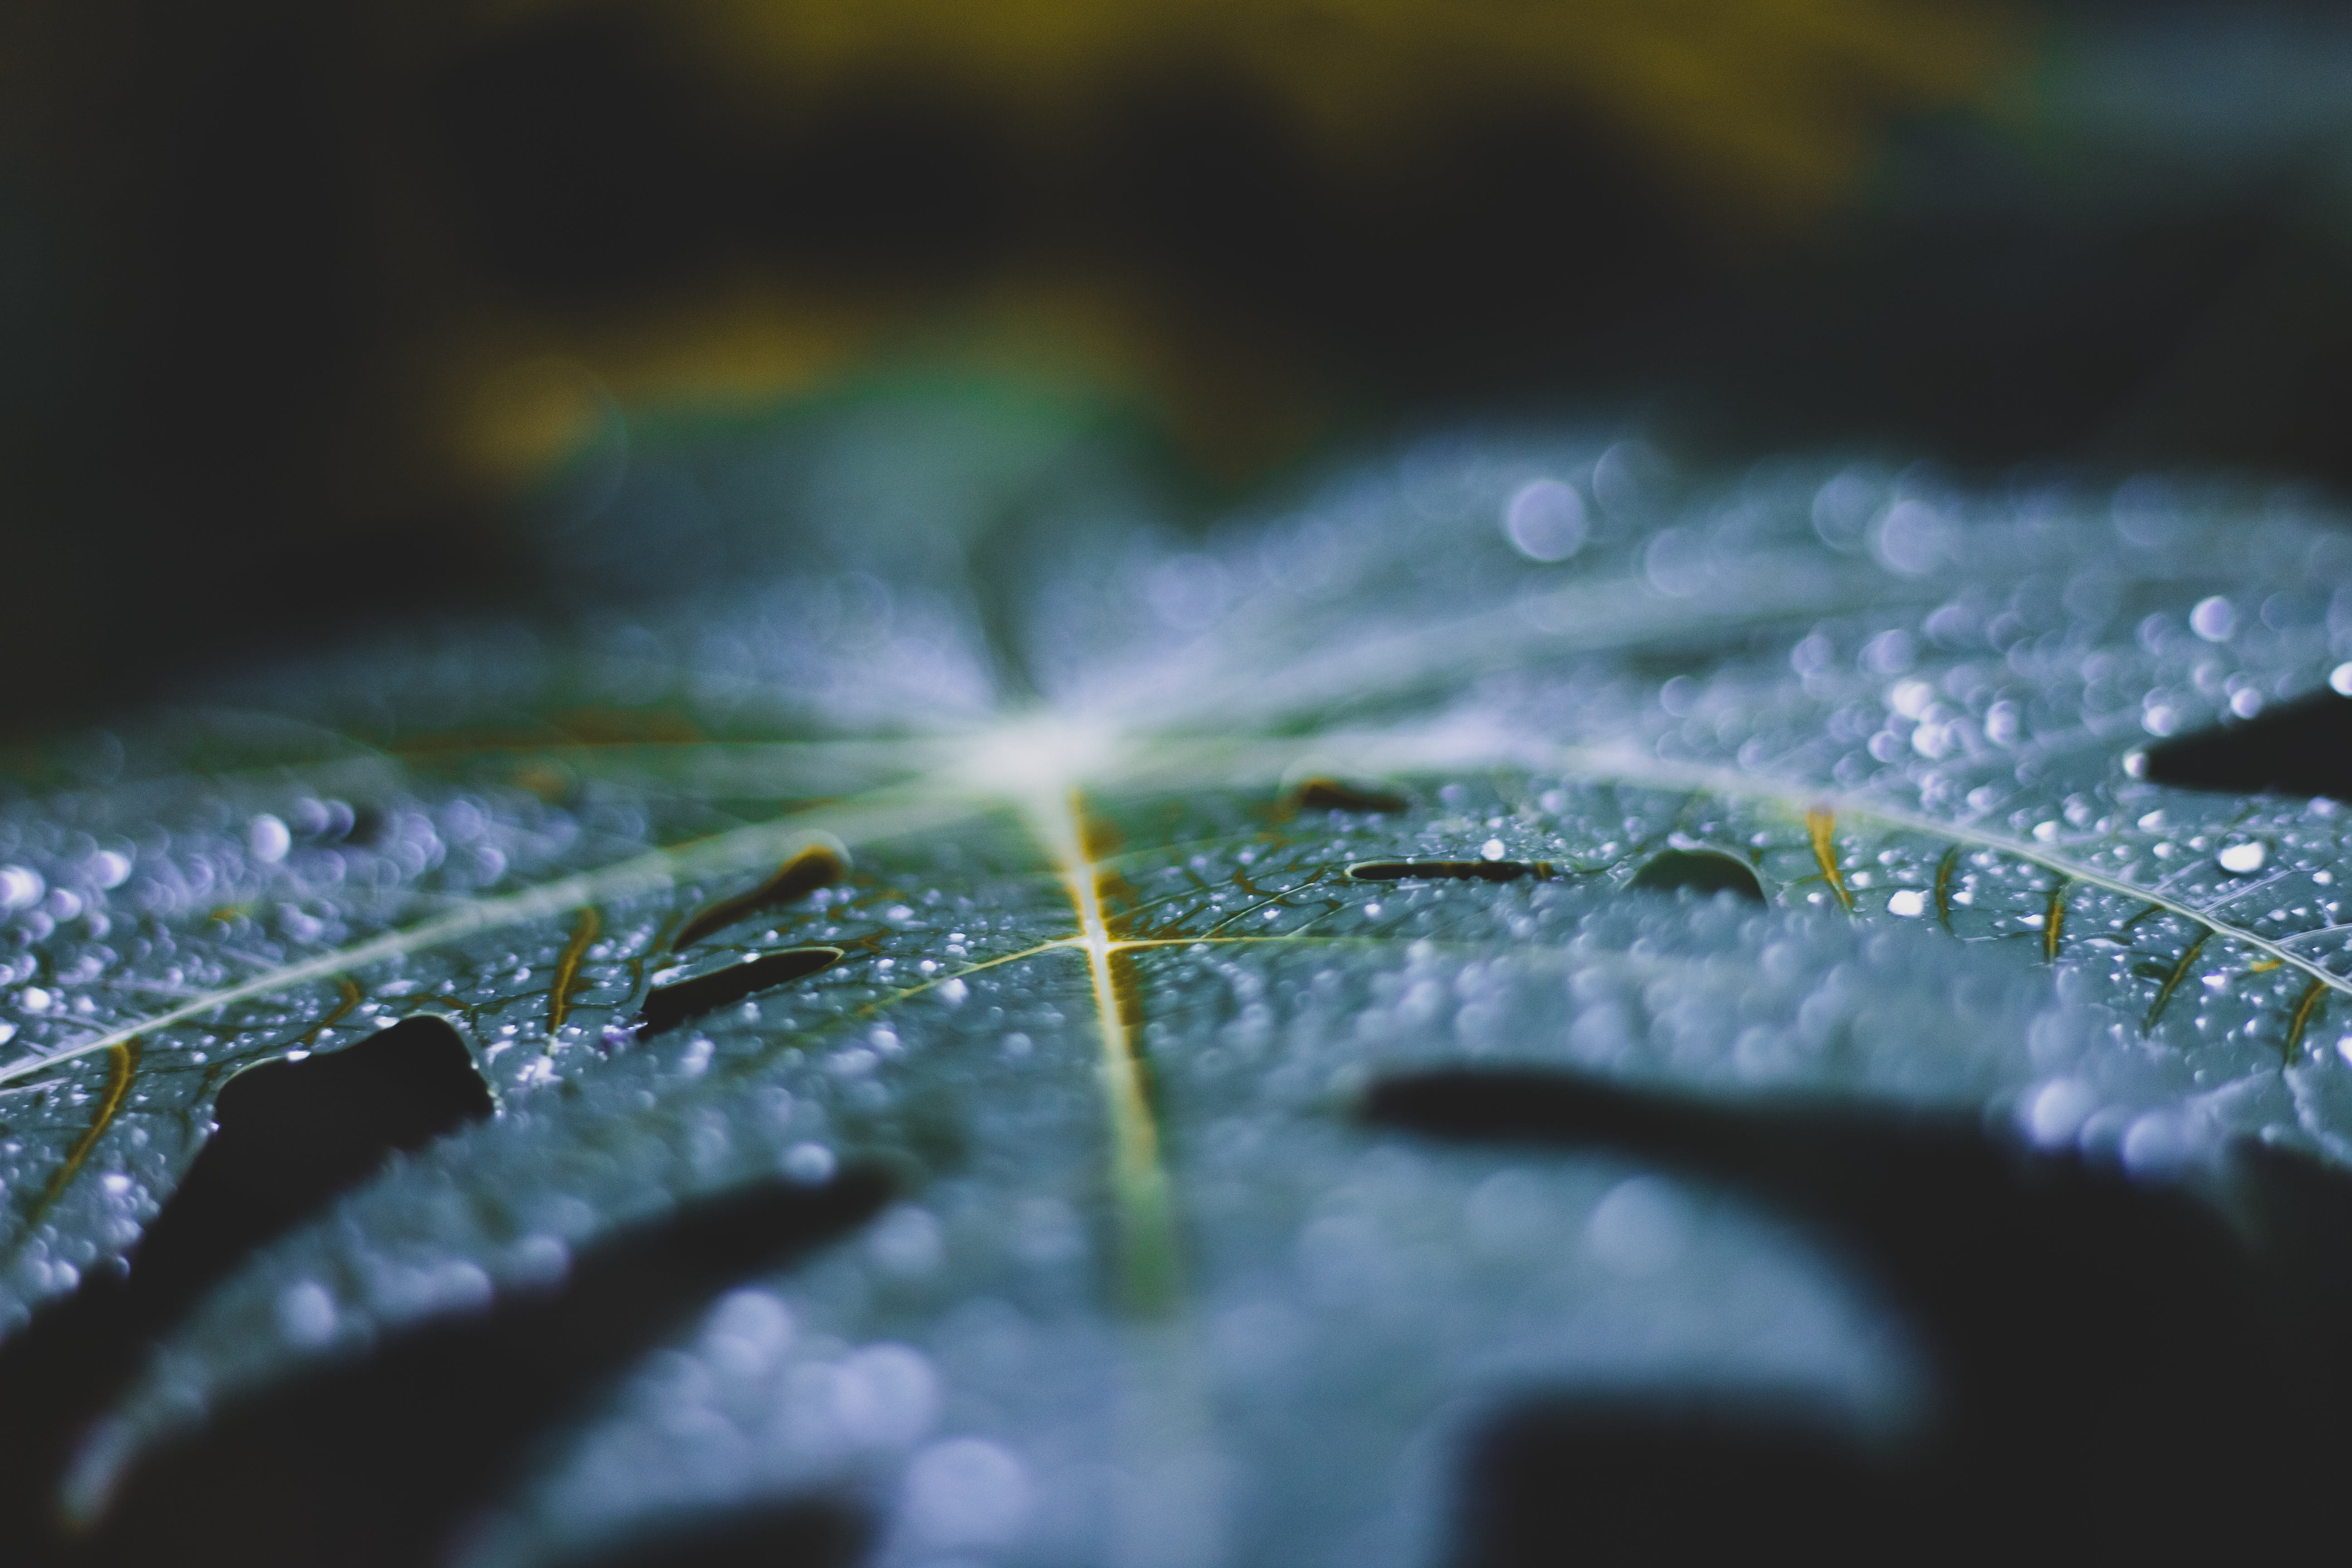 Close-Up Photo of Leaf With Droplets